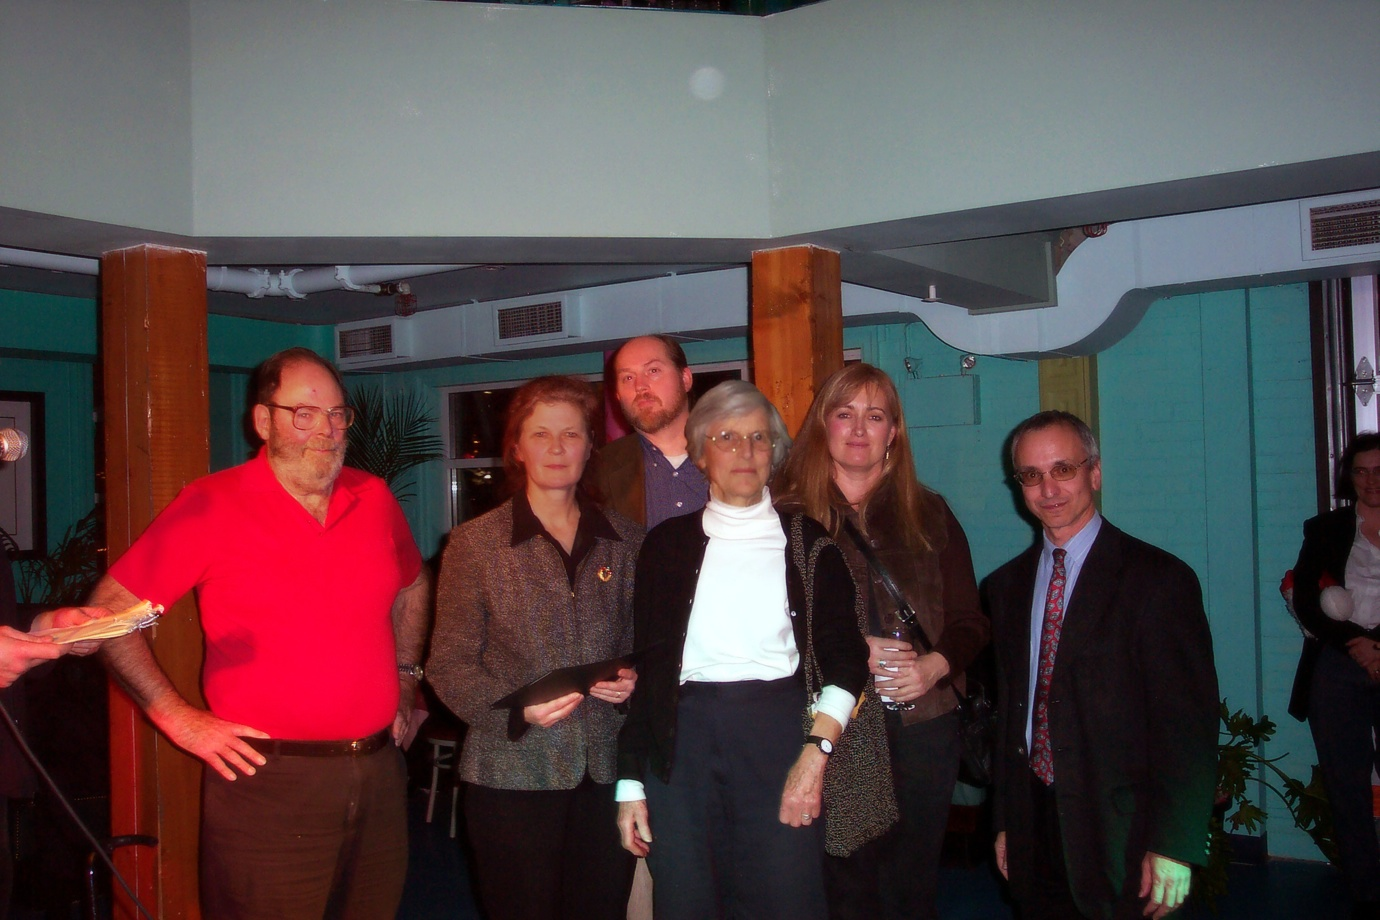 Pat Lawson (centre)being inducted into the Lake Ontario Hall of Fame with Port Hope residents at Waterkeeper's first office in Bambu by the Lake, 2003.